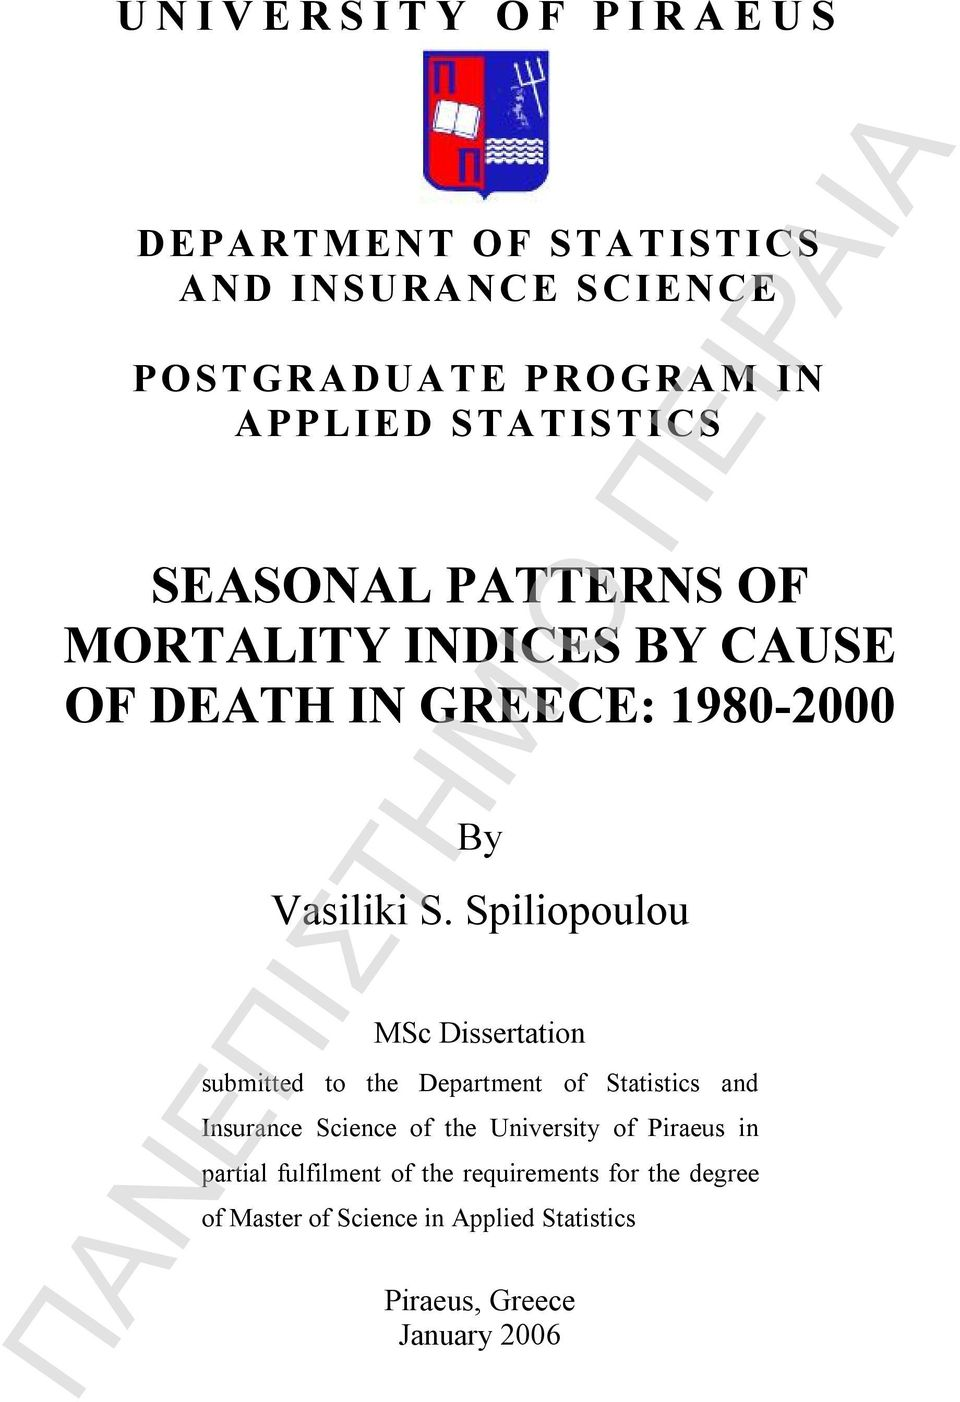 Spiliopoulou MSc Dissertation submitted to the Department of Statistics and Insurance Science of the University